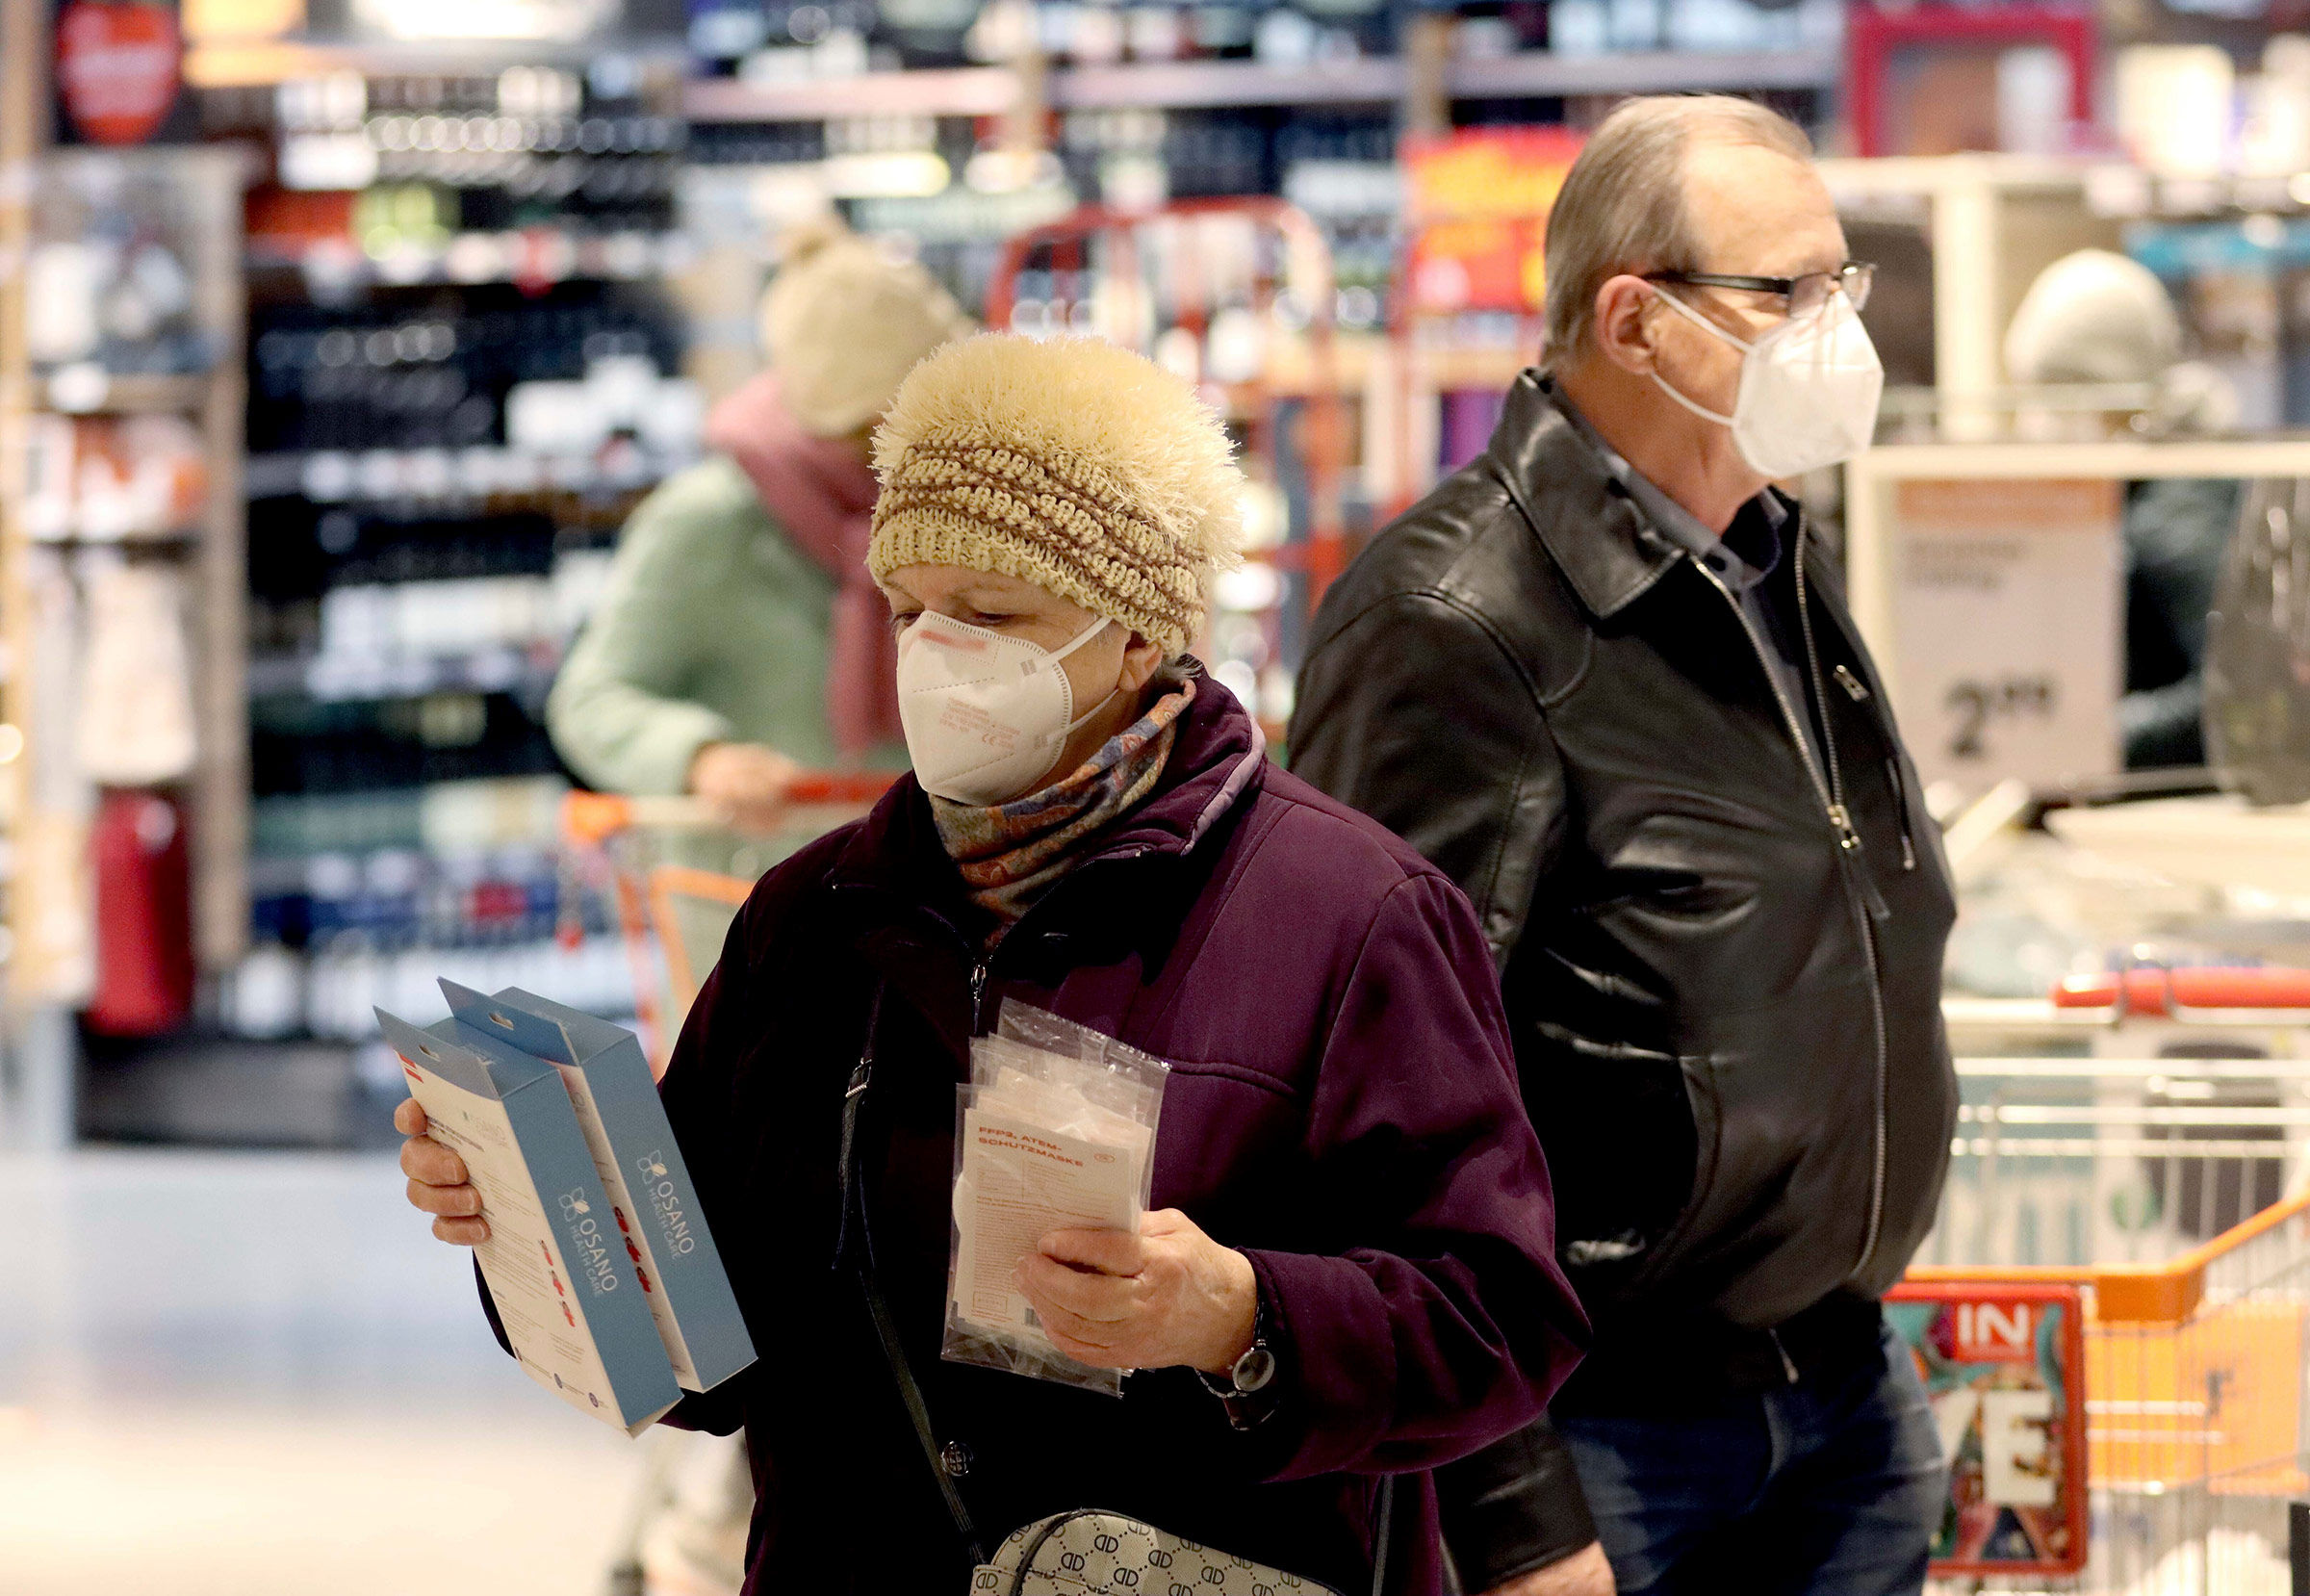 People wear FFP2 protective masks while shopping in a supermarket in Vienna, Austria, on January 25.